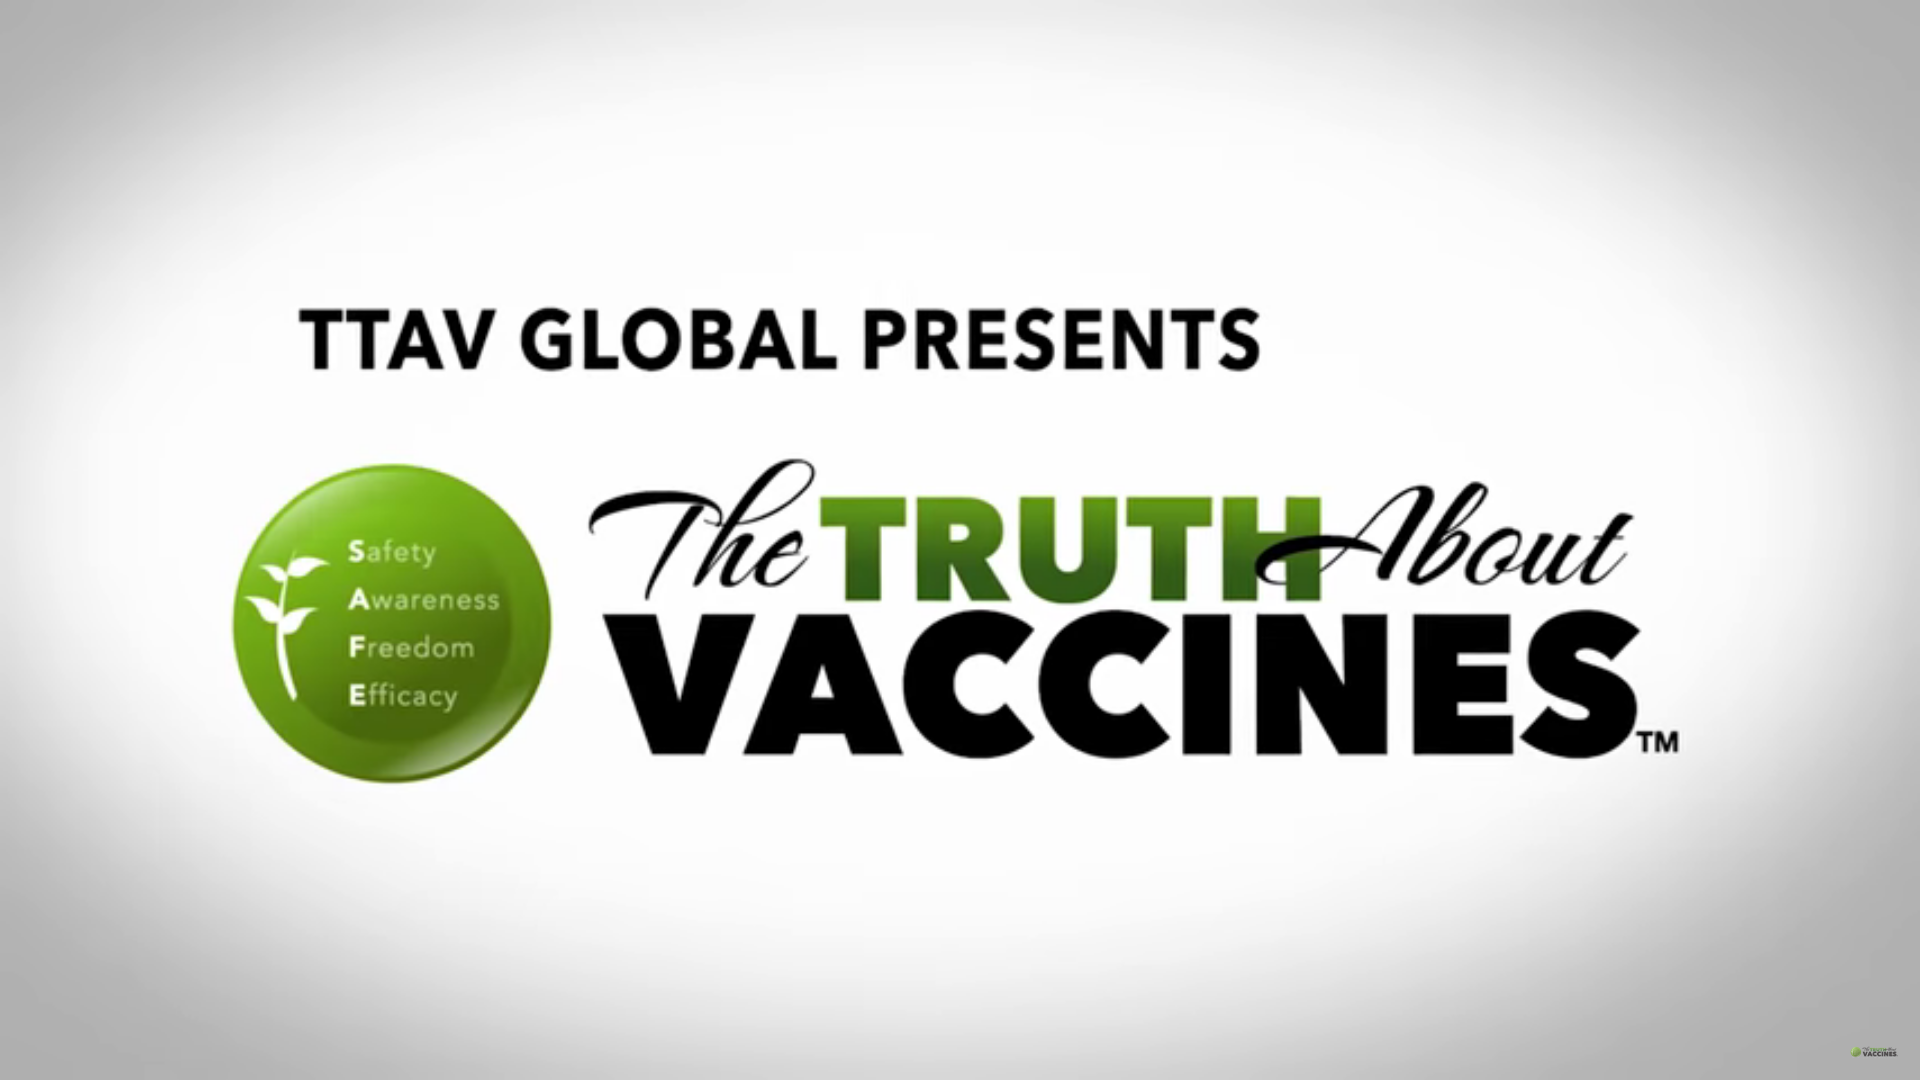 truth about vaccines - HD1920×1080